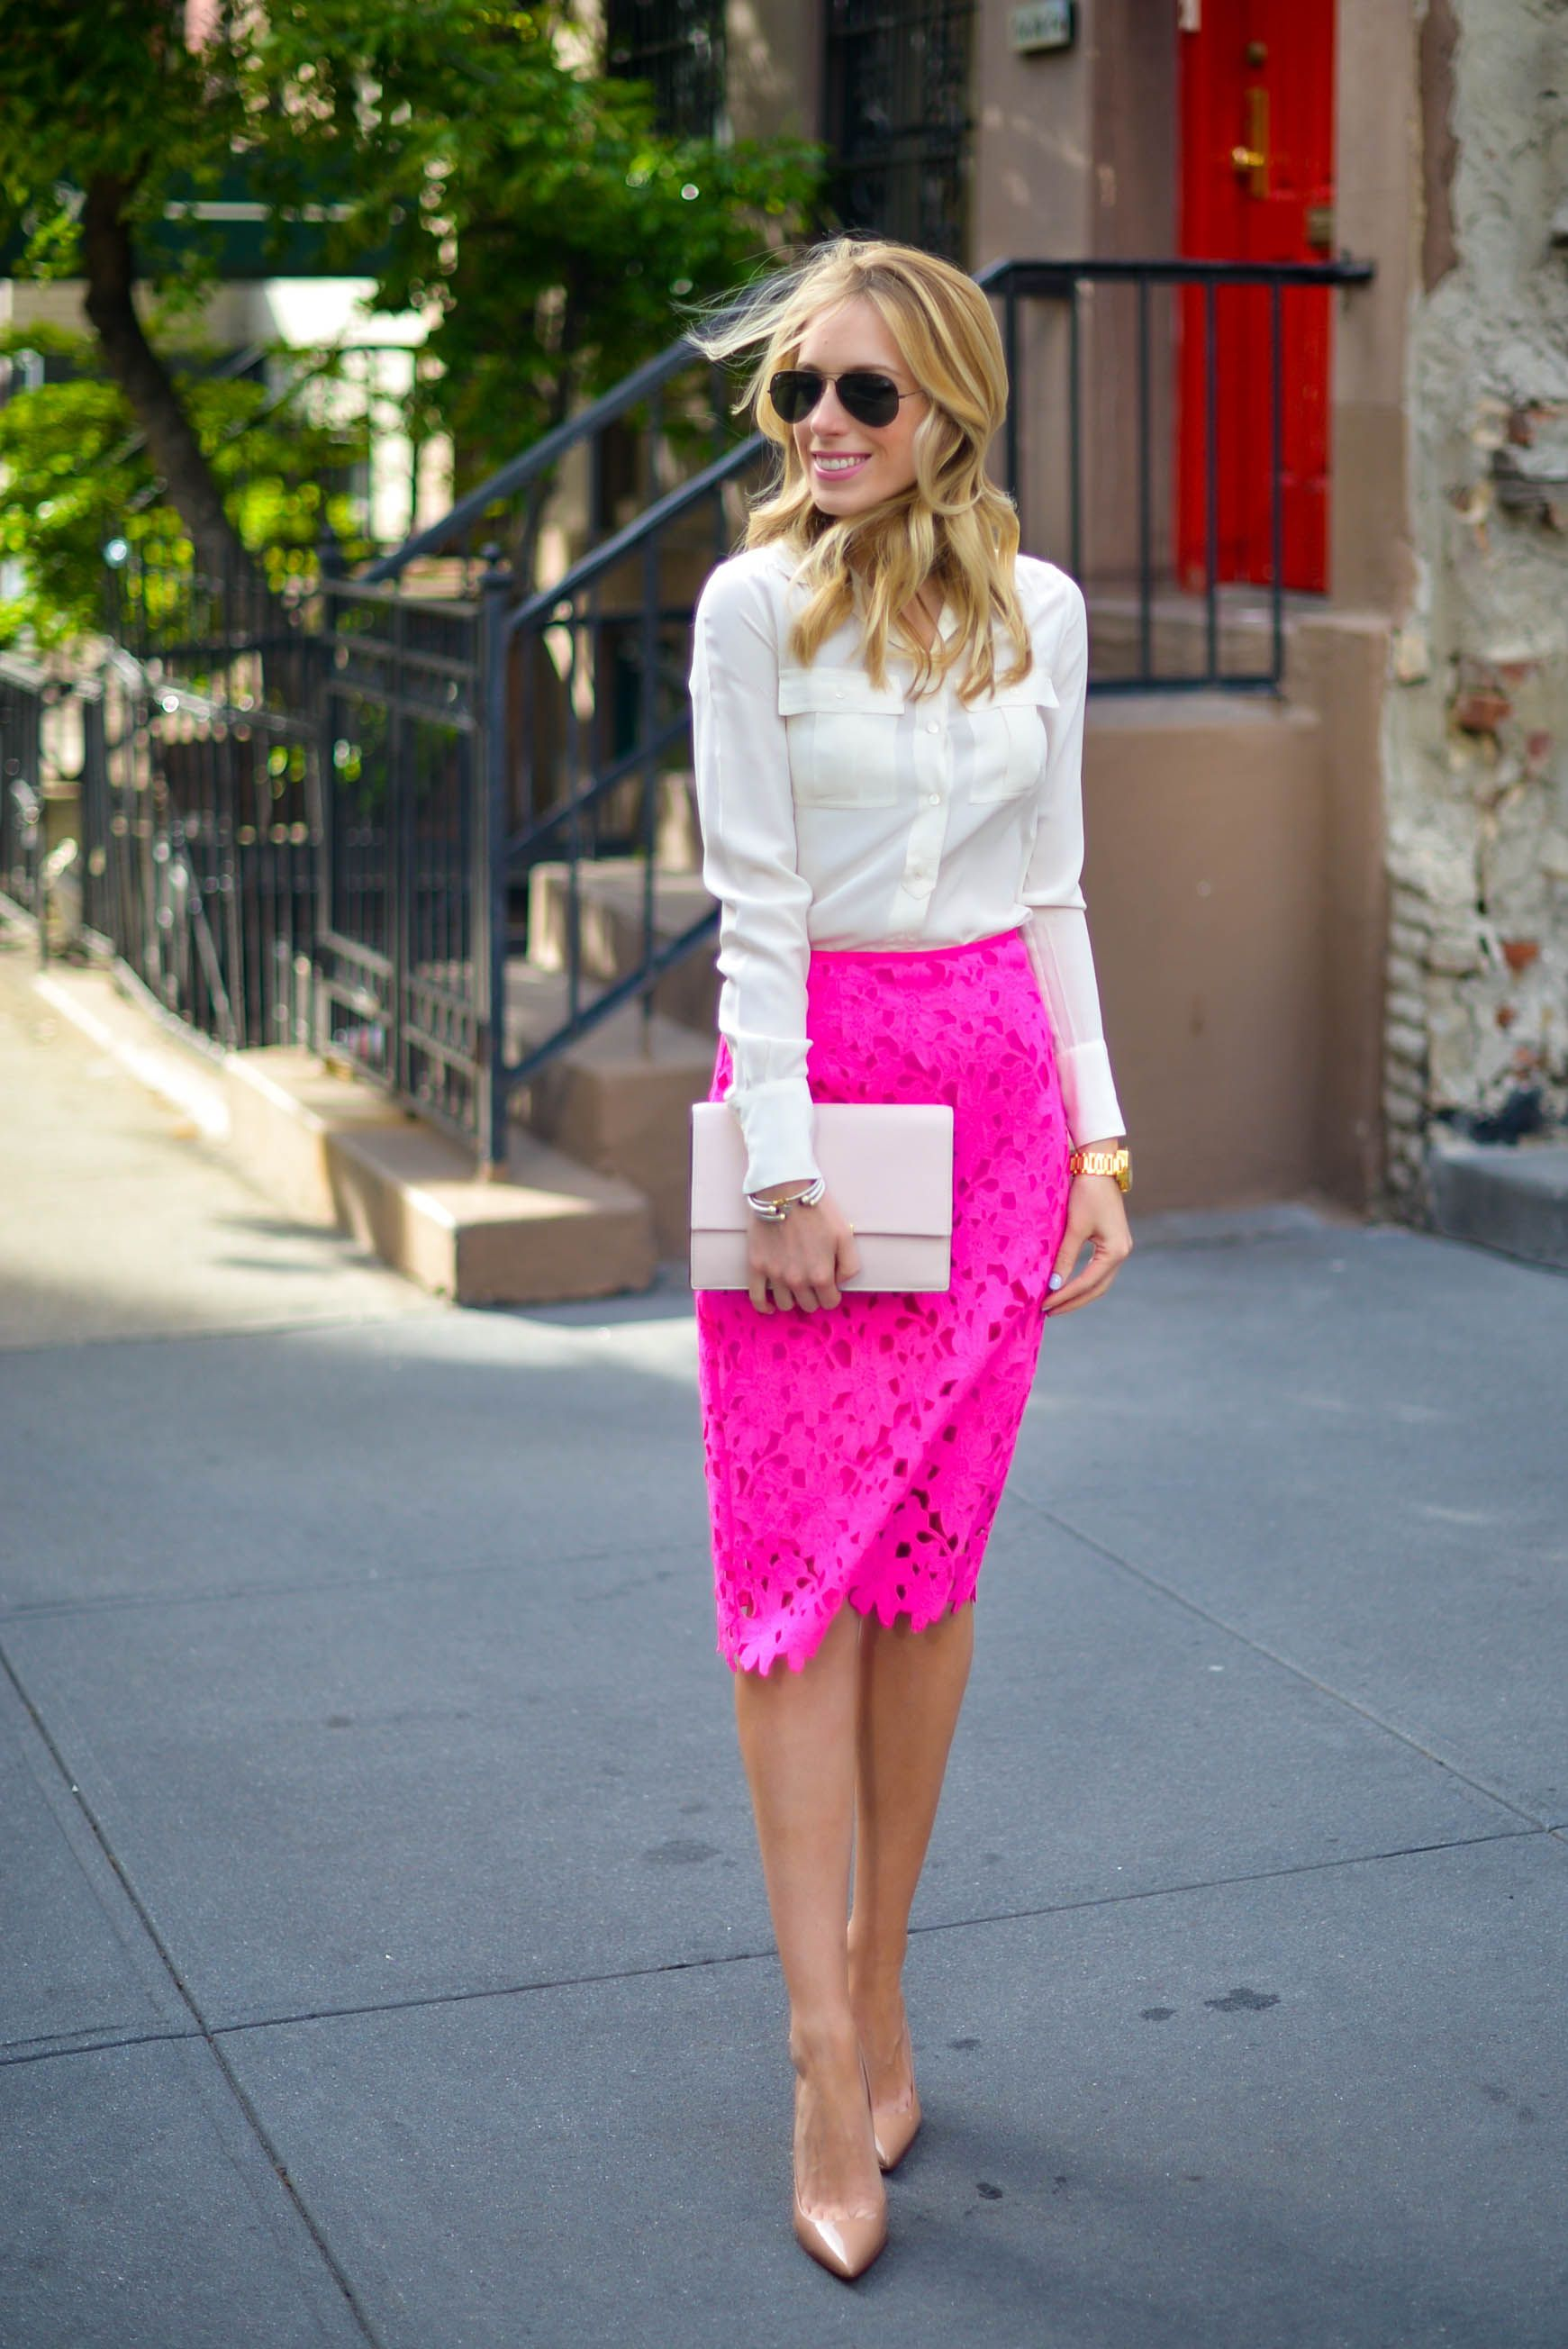 969022d909 This outfit gave me the idea to wear my white short sleeve button up shirt, hot  pink lace pencil skirt, nude patent heels, and black sunglasses.